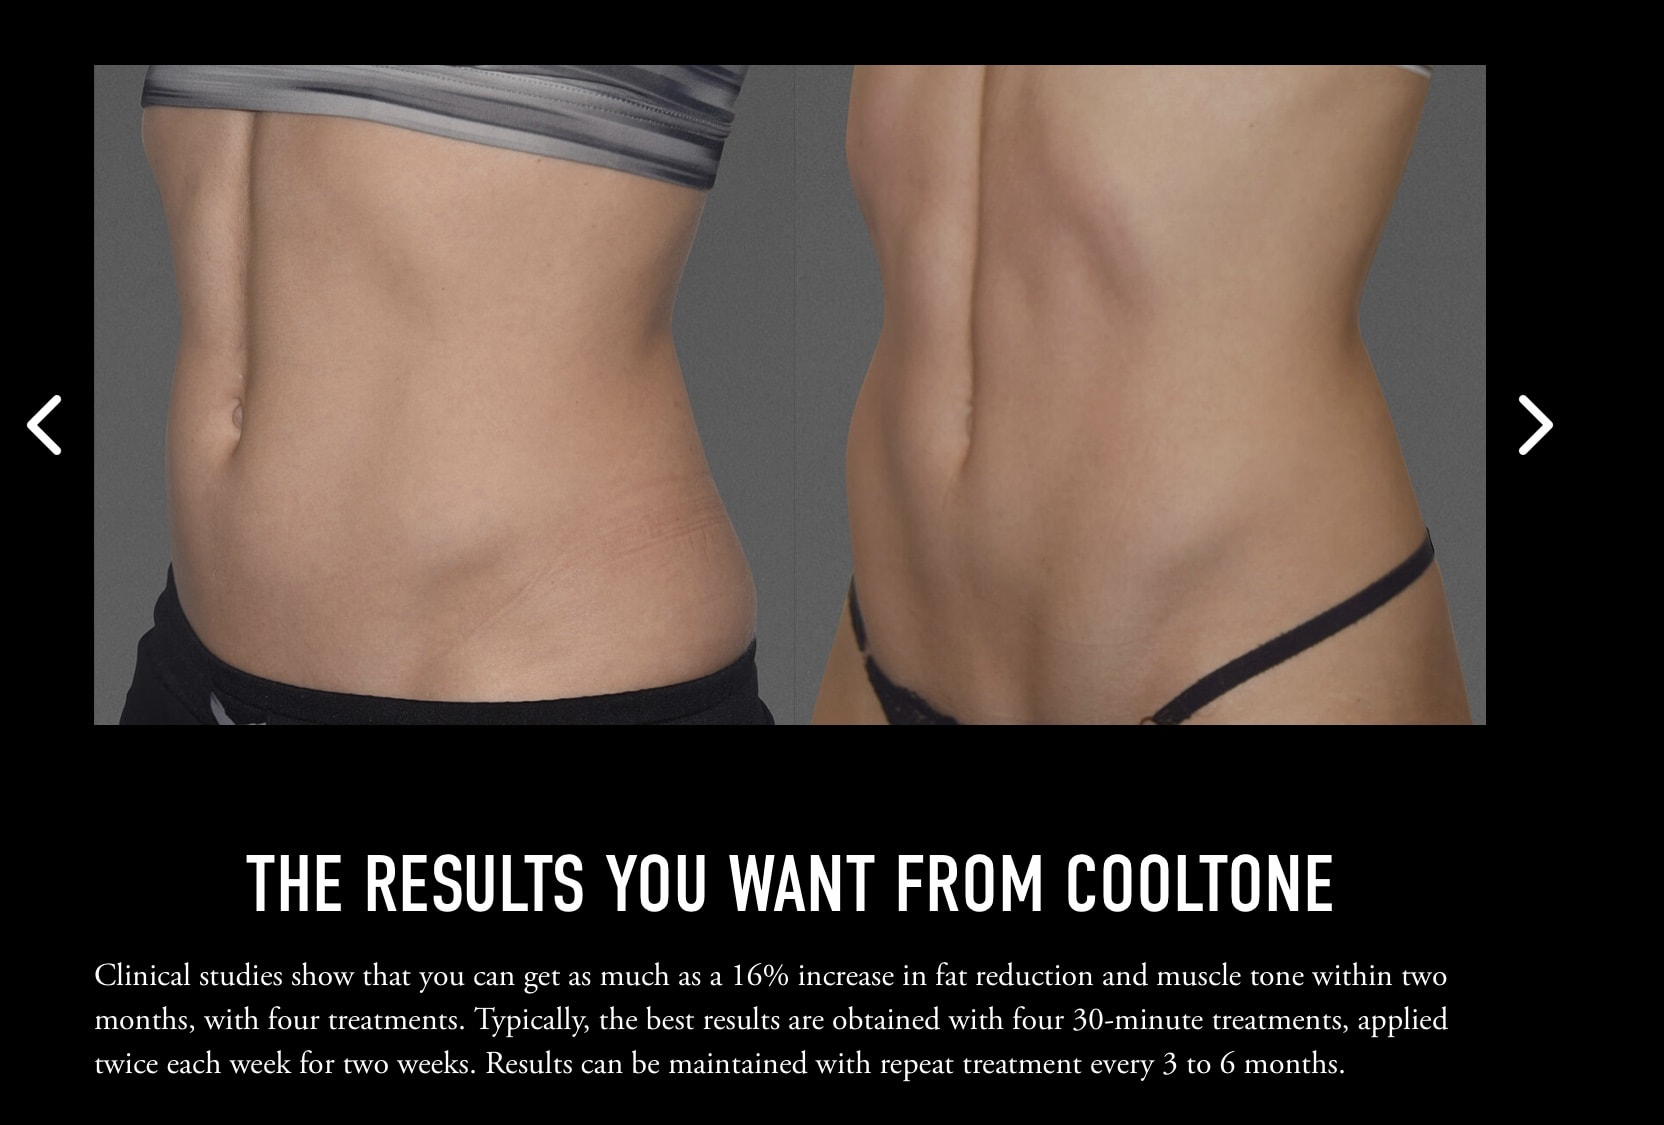 Cooltone-Dr Varano Medical Cosmetic